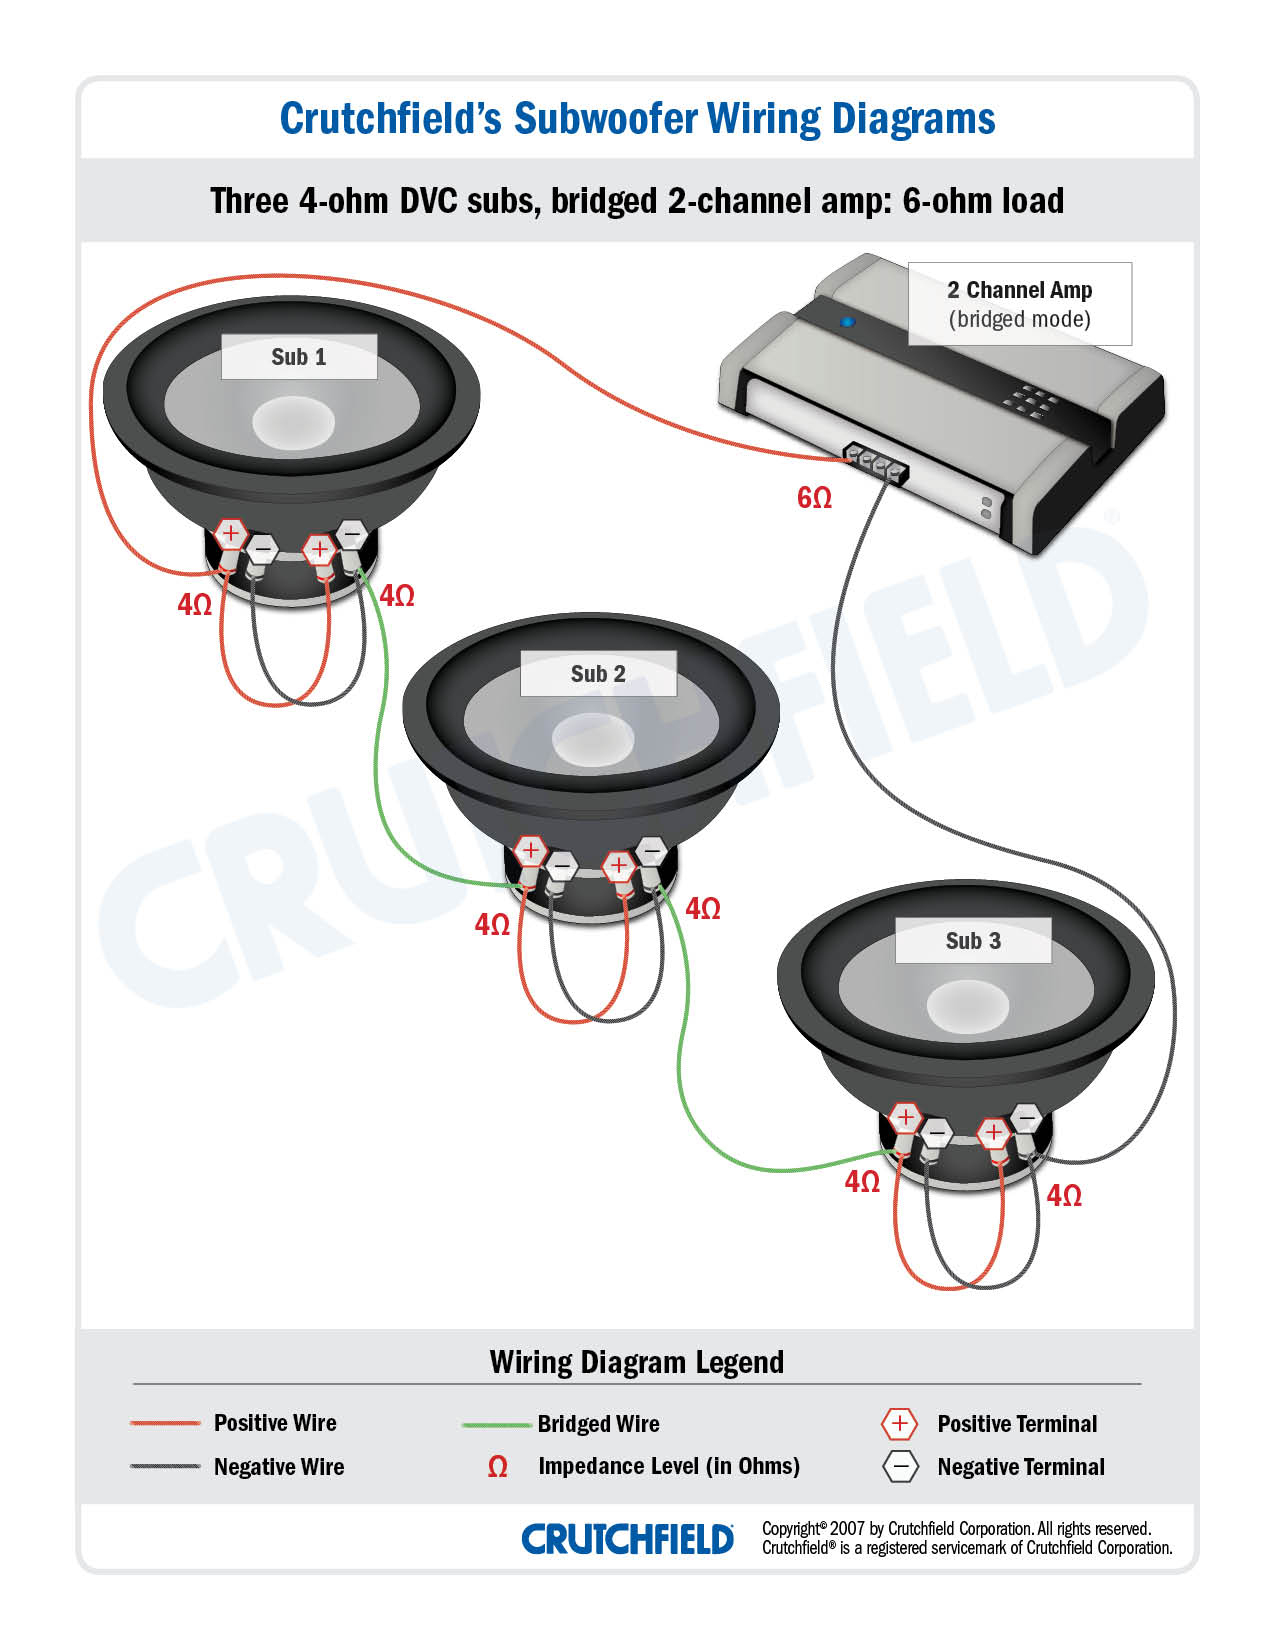 Subwoofer Wiring Diagrams — How To Wire Your Subs - 2 Channel Amp Wiring Diagram